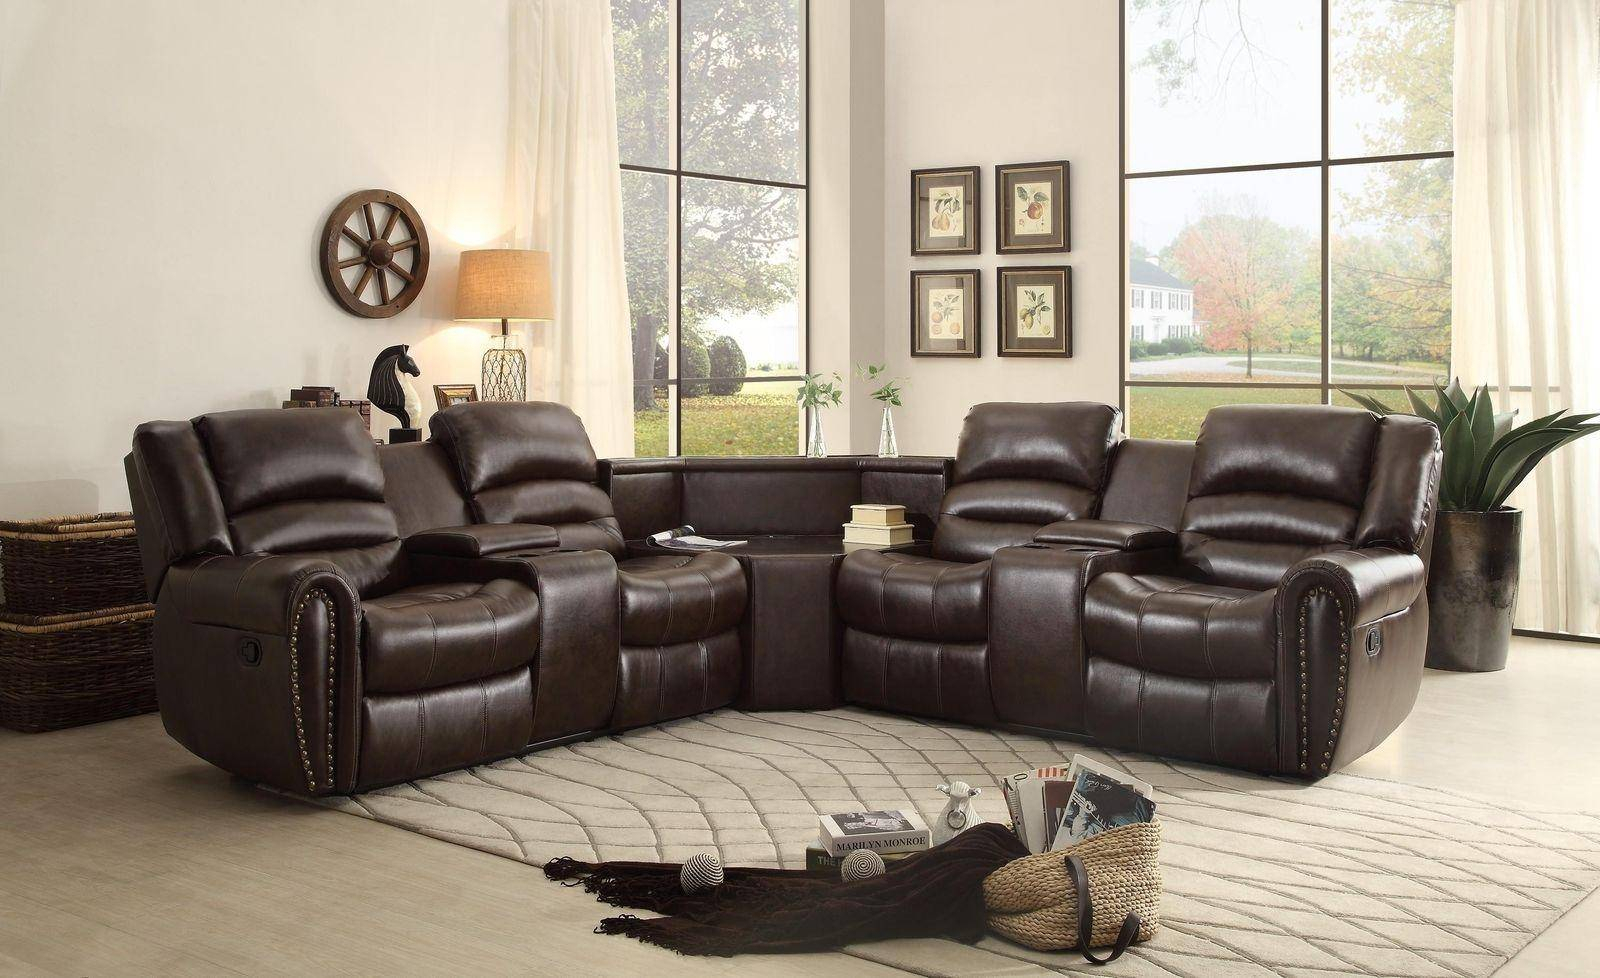 Homelegance Palmyra Brown Bonded Leather Reclining Pertaining To 3Pc Bonded Leather Upholstered Wooden Sectional Sofas Brown (View 6 of 15)